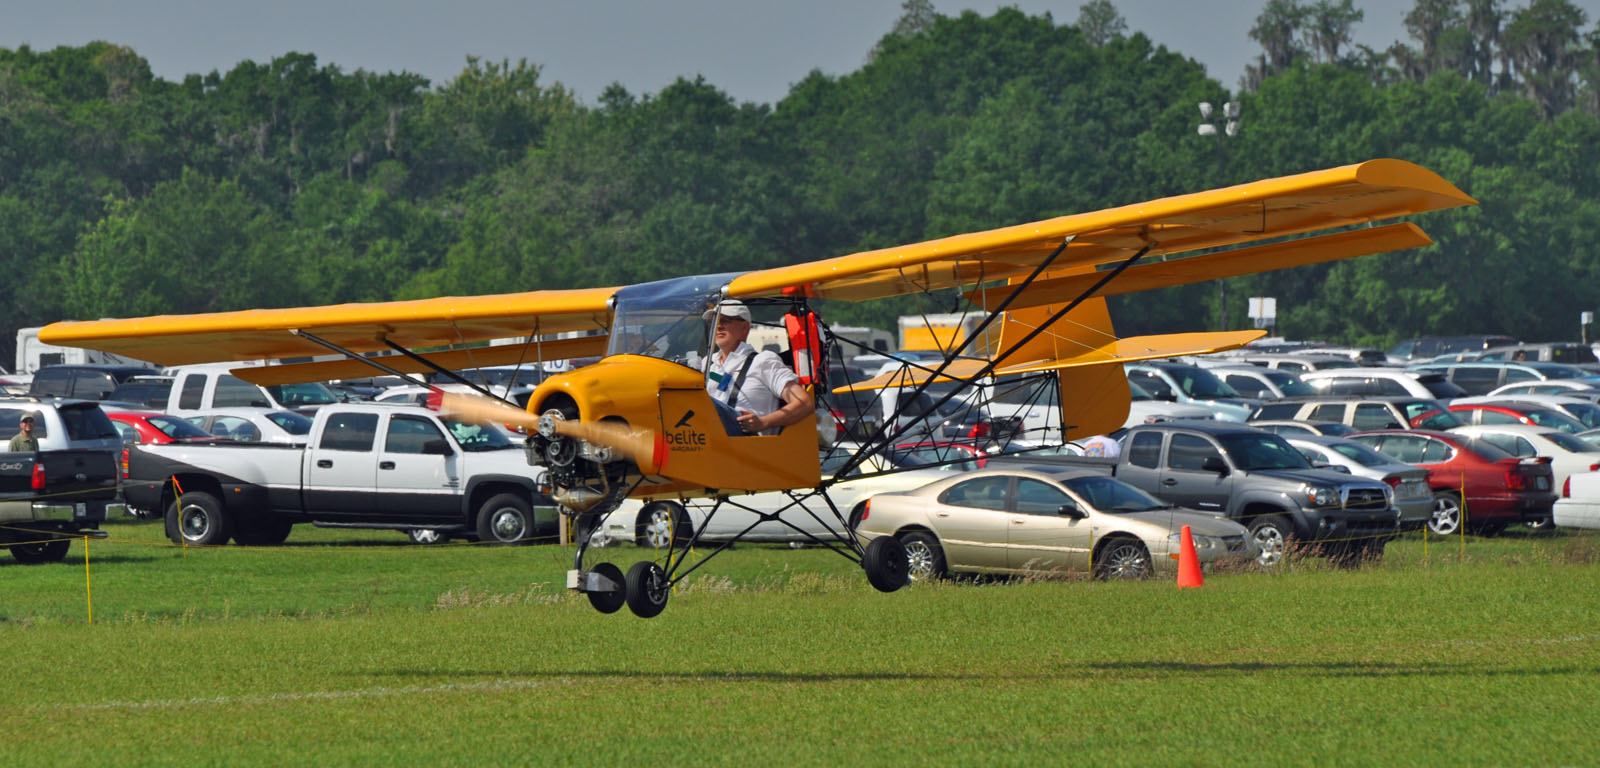 Belite Ultralight Blog: Belite's Ultralight Aircraft